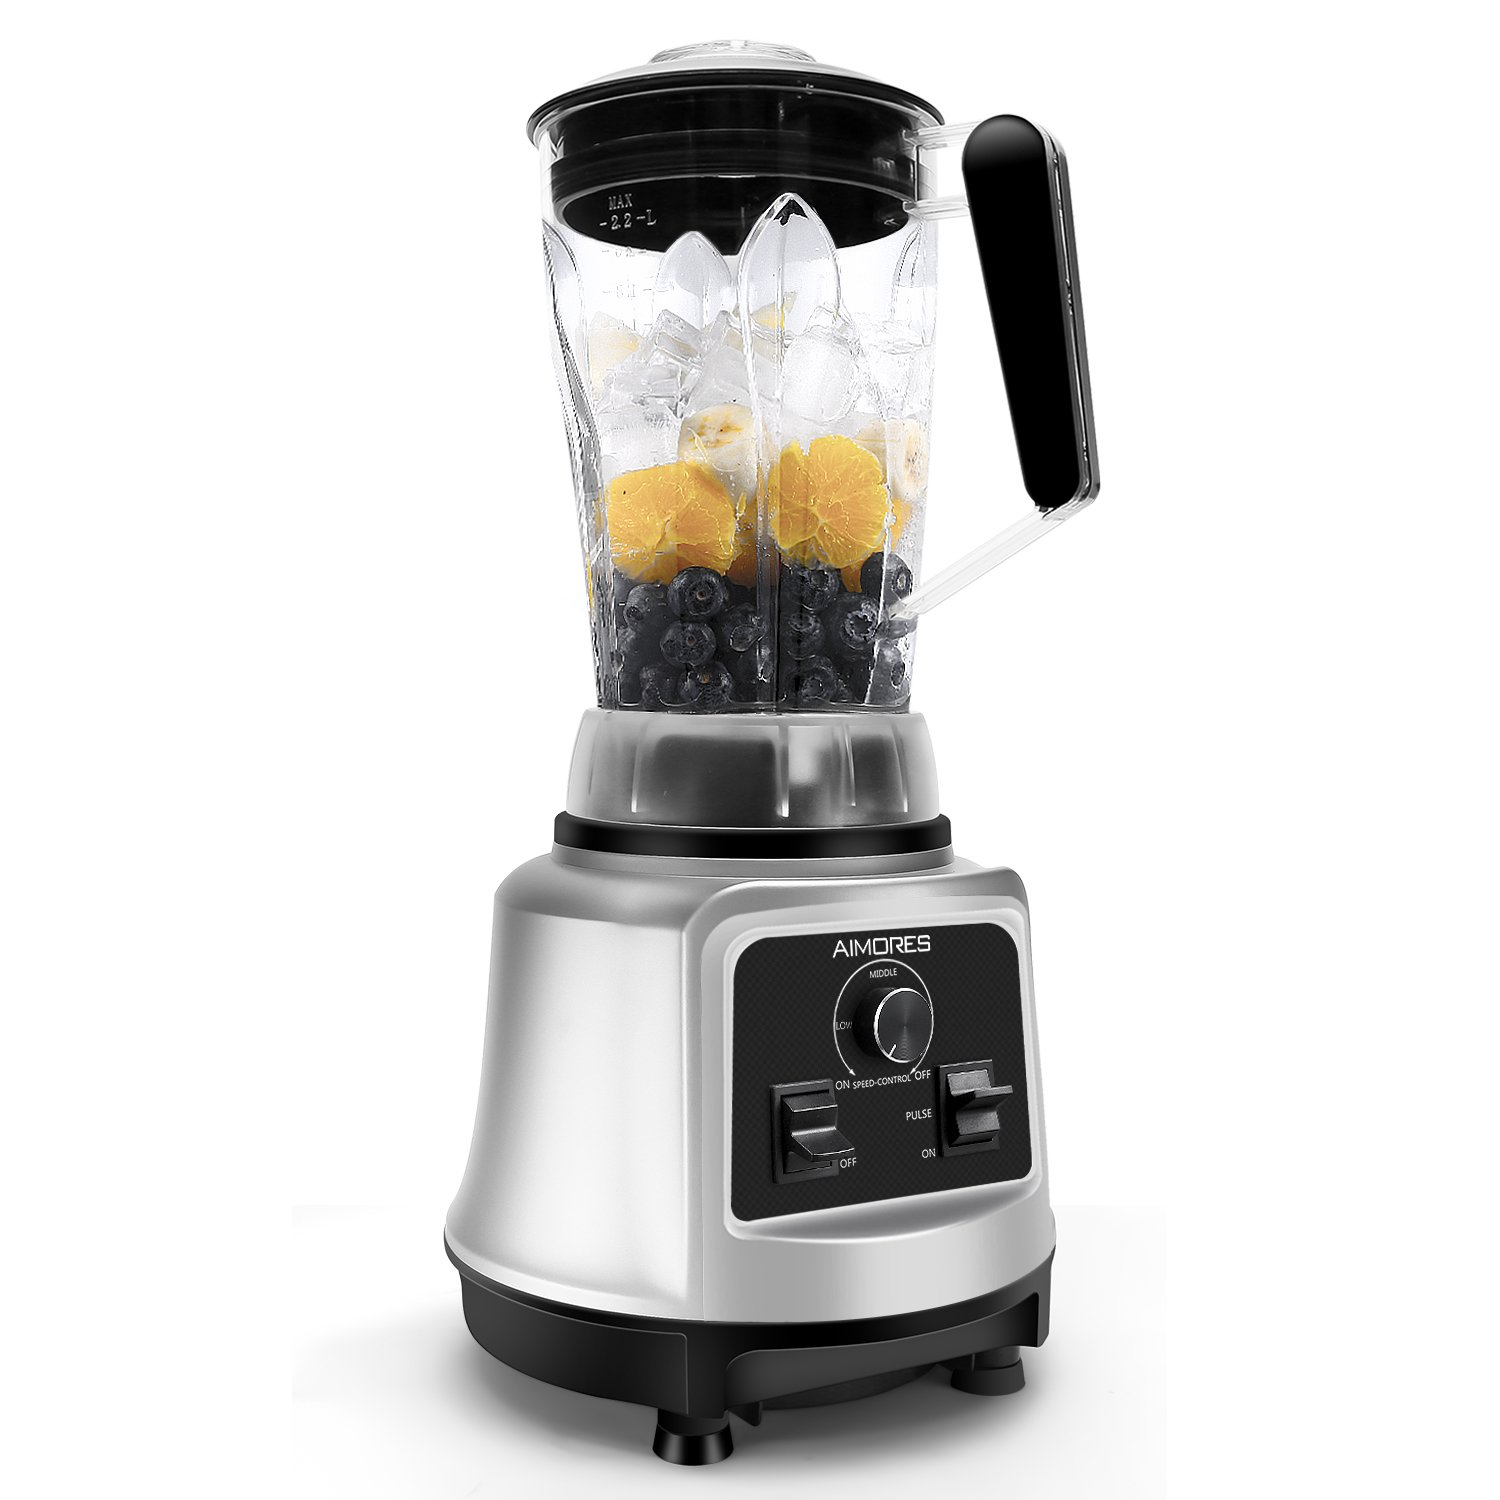 Professional Smoothie Blender Aimores | 750z High Speed Juicer, Ice Cream Maker | Optimized 6 Sharp Blades | Auto Clean & Simple Control | w/ Recipe & Tamper | ETL & FDA Certified (Silver)